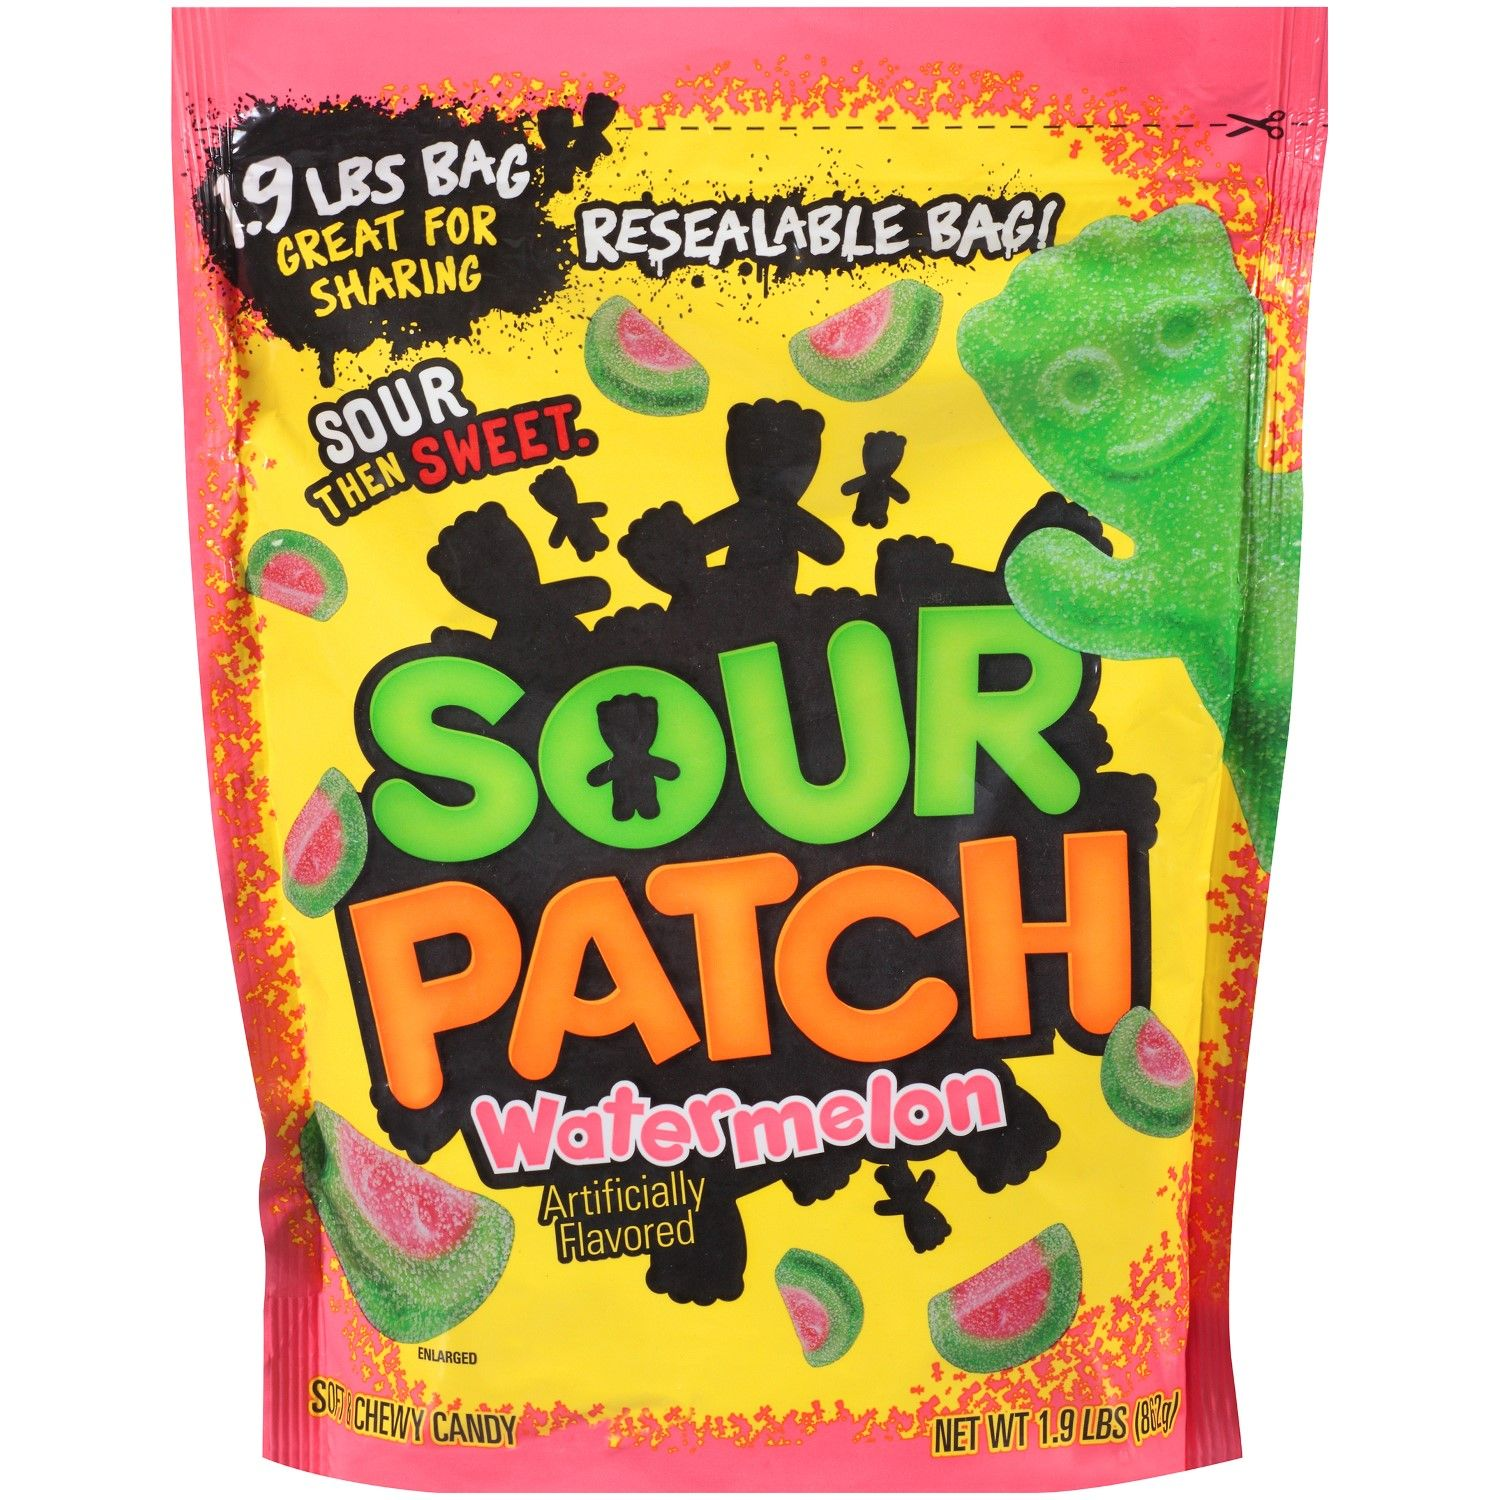 Sour Patch Candy Watermelon 1 9 Pounds With Images Sour Patch Watermelon Sour Patch Kids Sour Patch